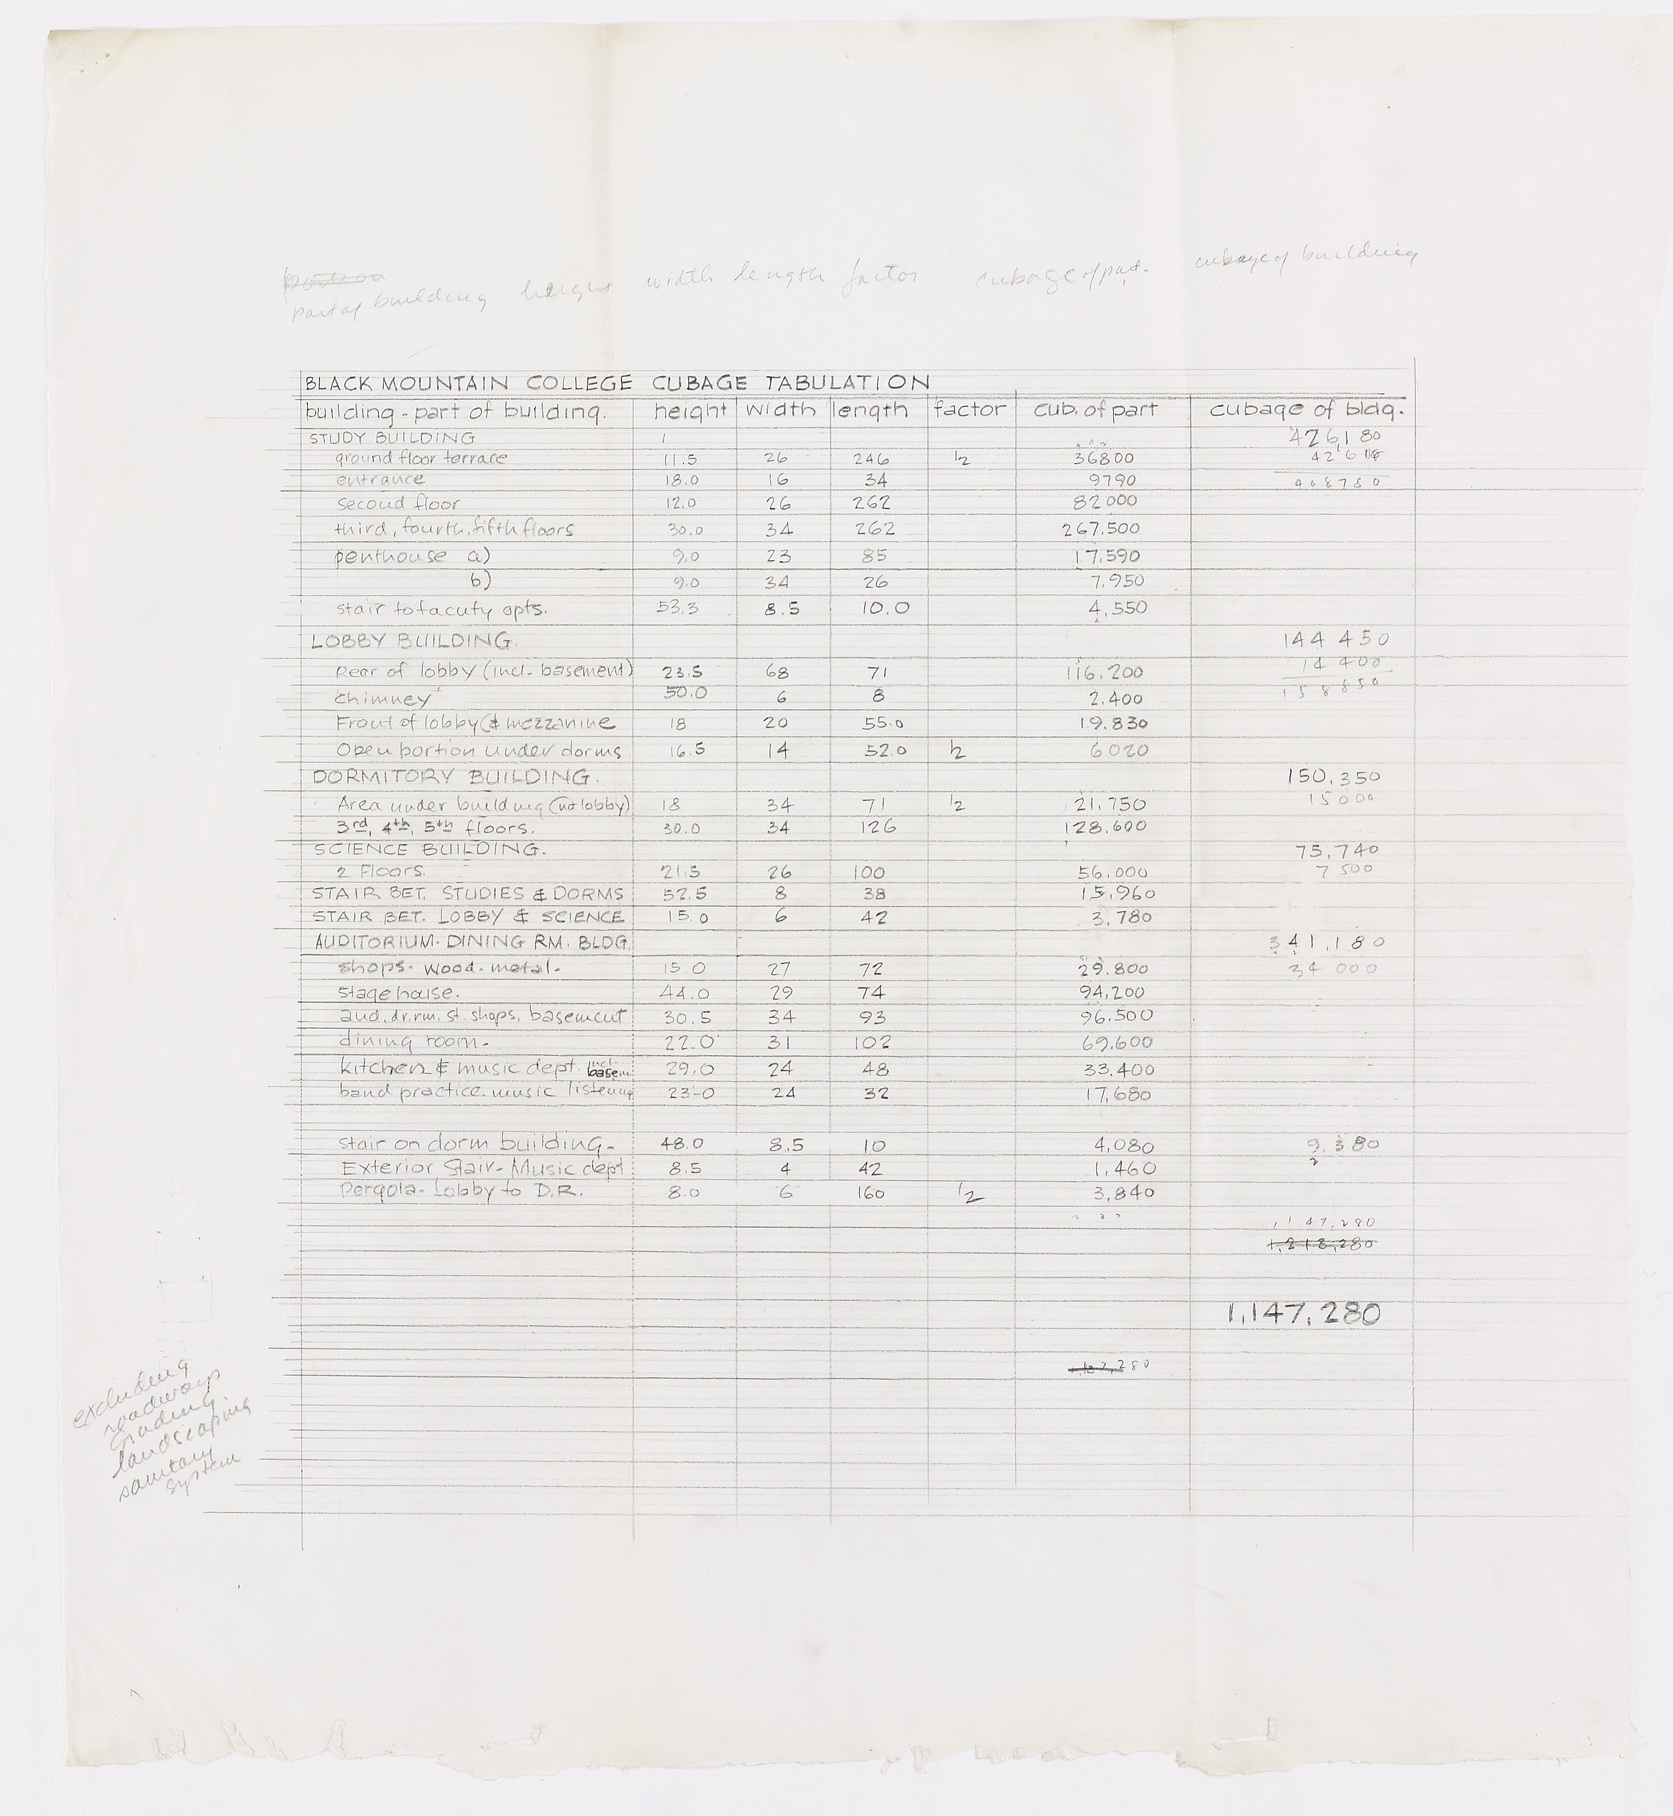 Click to select: Black Mountain College Cubage Tabulation